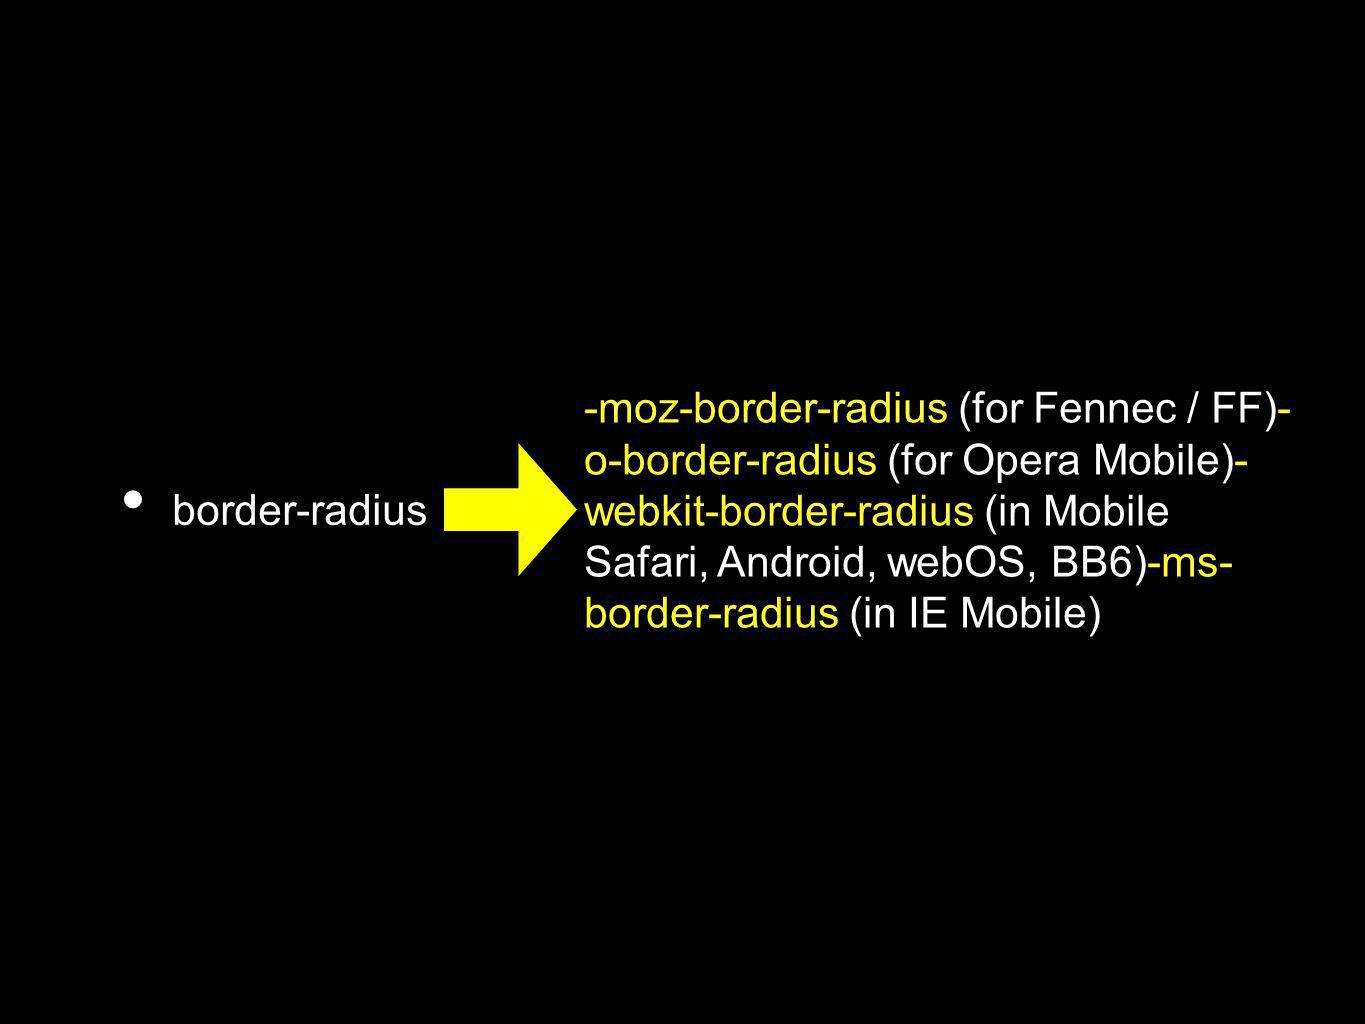 border-radius -moz-border-radius (for Fennec / FF)- o-border-radius (for Opera Mobile)- webkit-border-radius (in Mobile Safari, Android, webOS, BB6)-ms- border-radius (in IE Mobile)